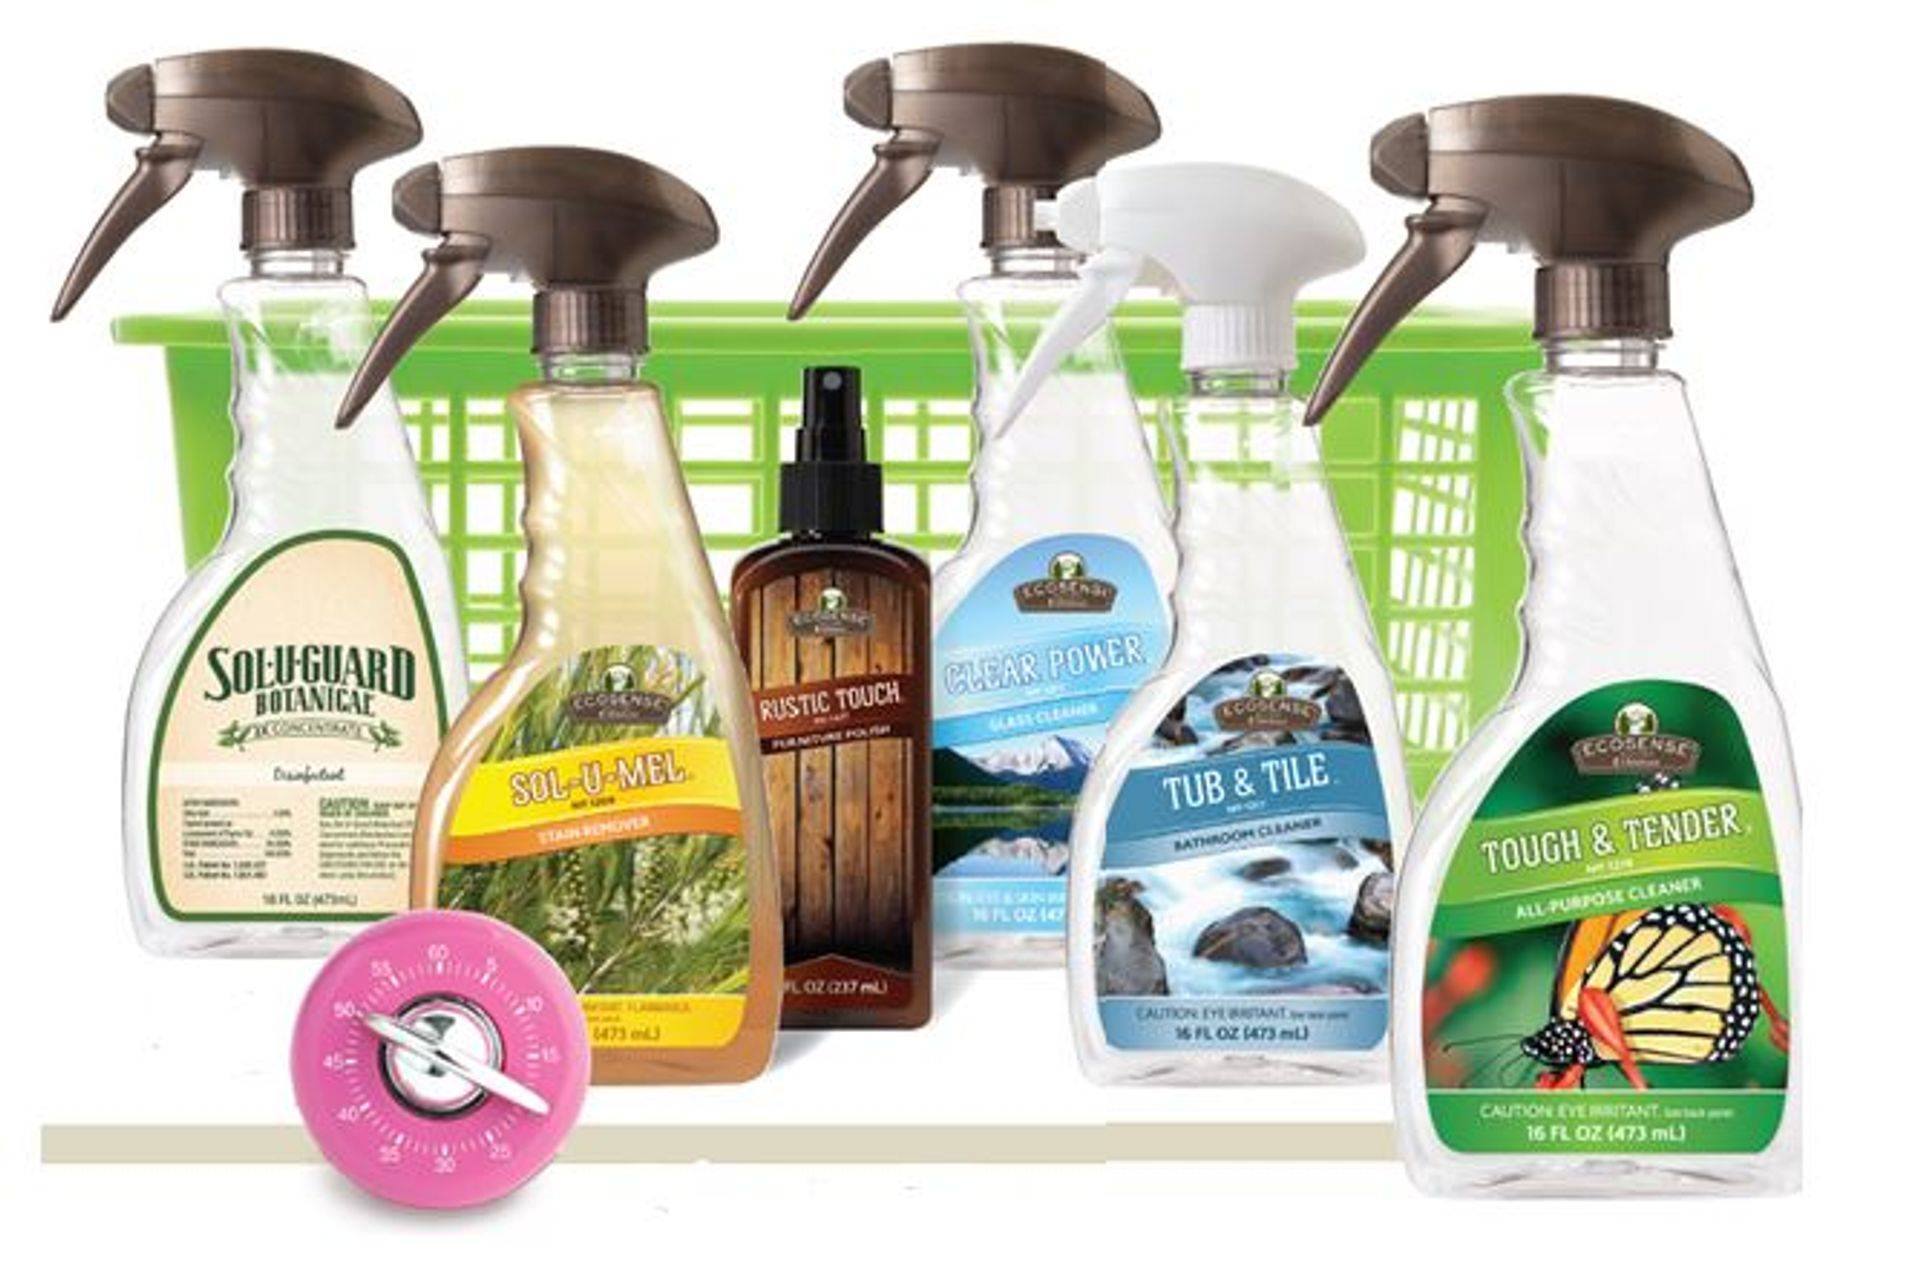 Melaleuca home cleaning products